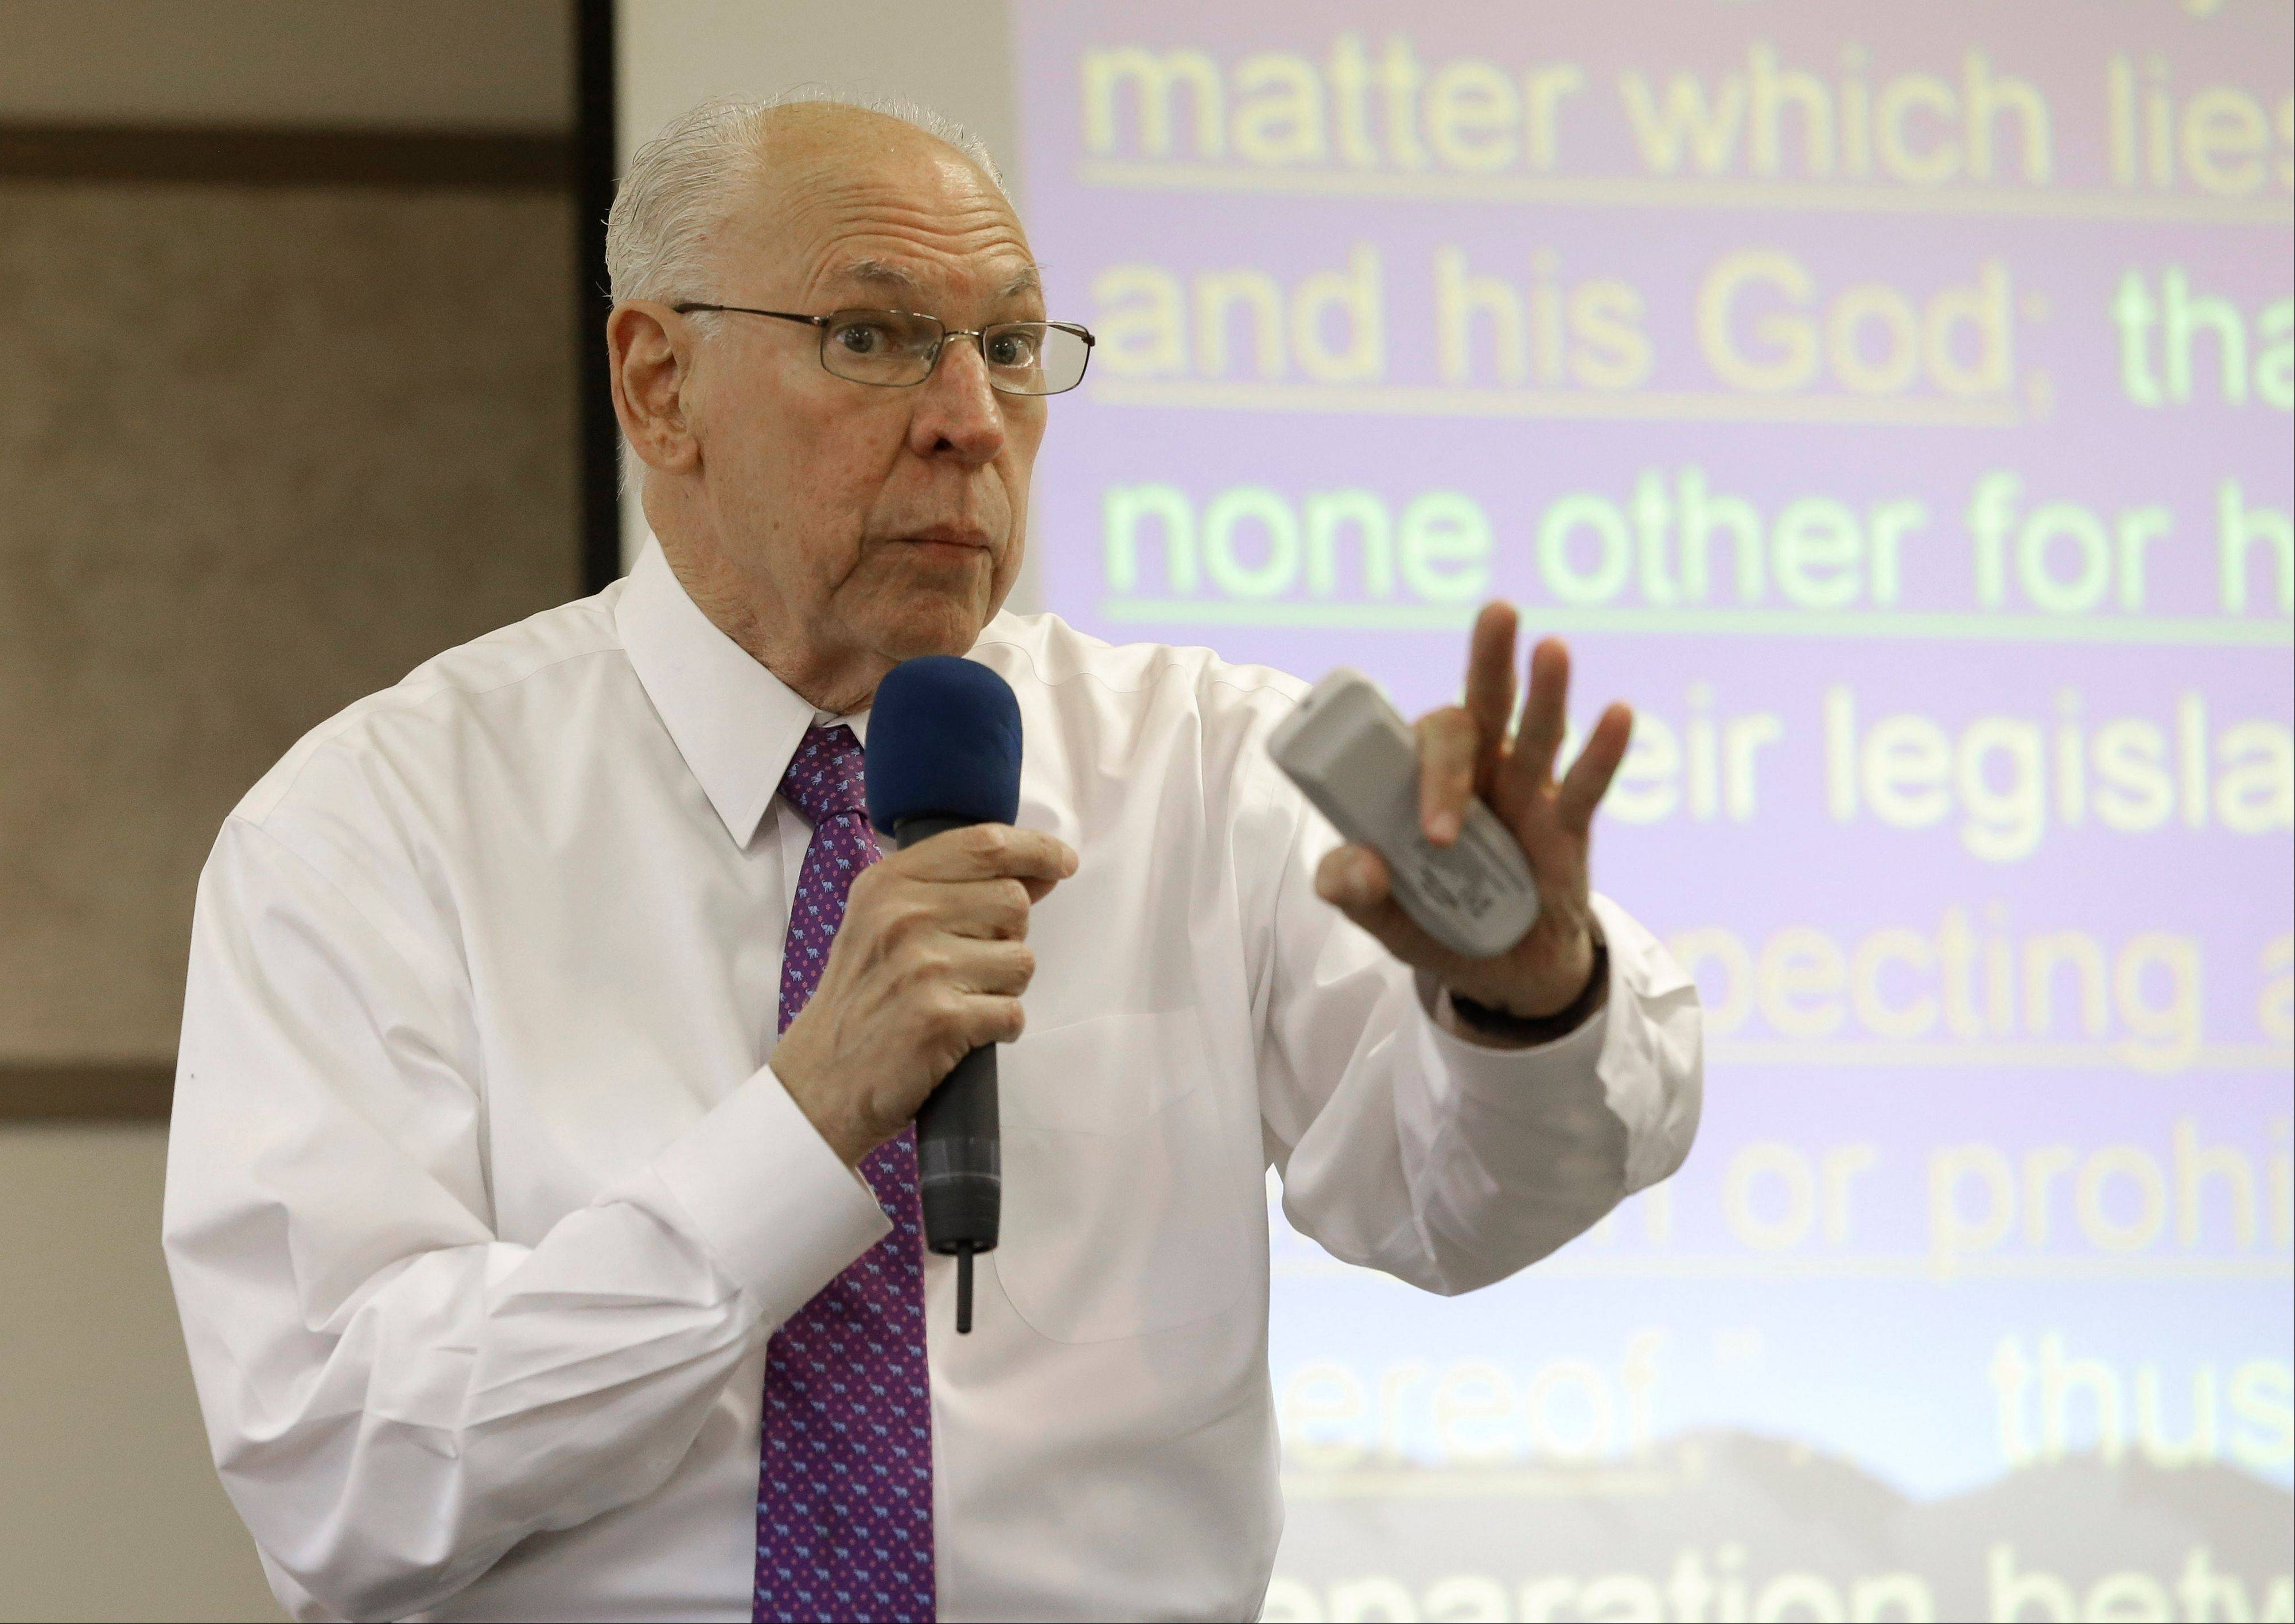 Rafael Cruz speaks during a Tea Party gathering Friday, Jan. 10, 2014, in Madisonville, Texas. The father of U.S. Senator Ted Cruz has turned some heads by calling for sending Barack Obama �back to Kenya� and dismissing the president as an �outright Marxist� out to �destroy all concept of God.�